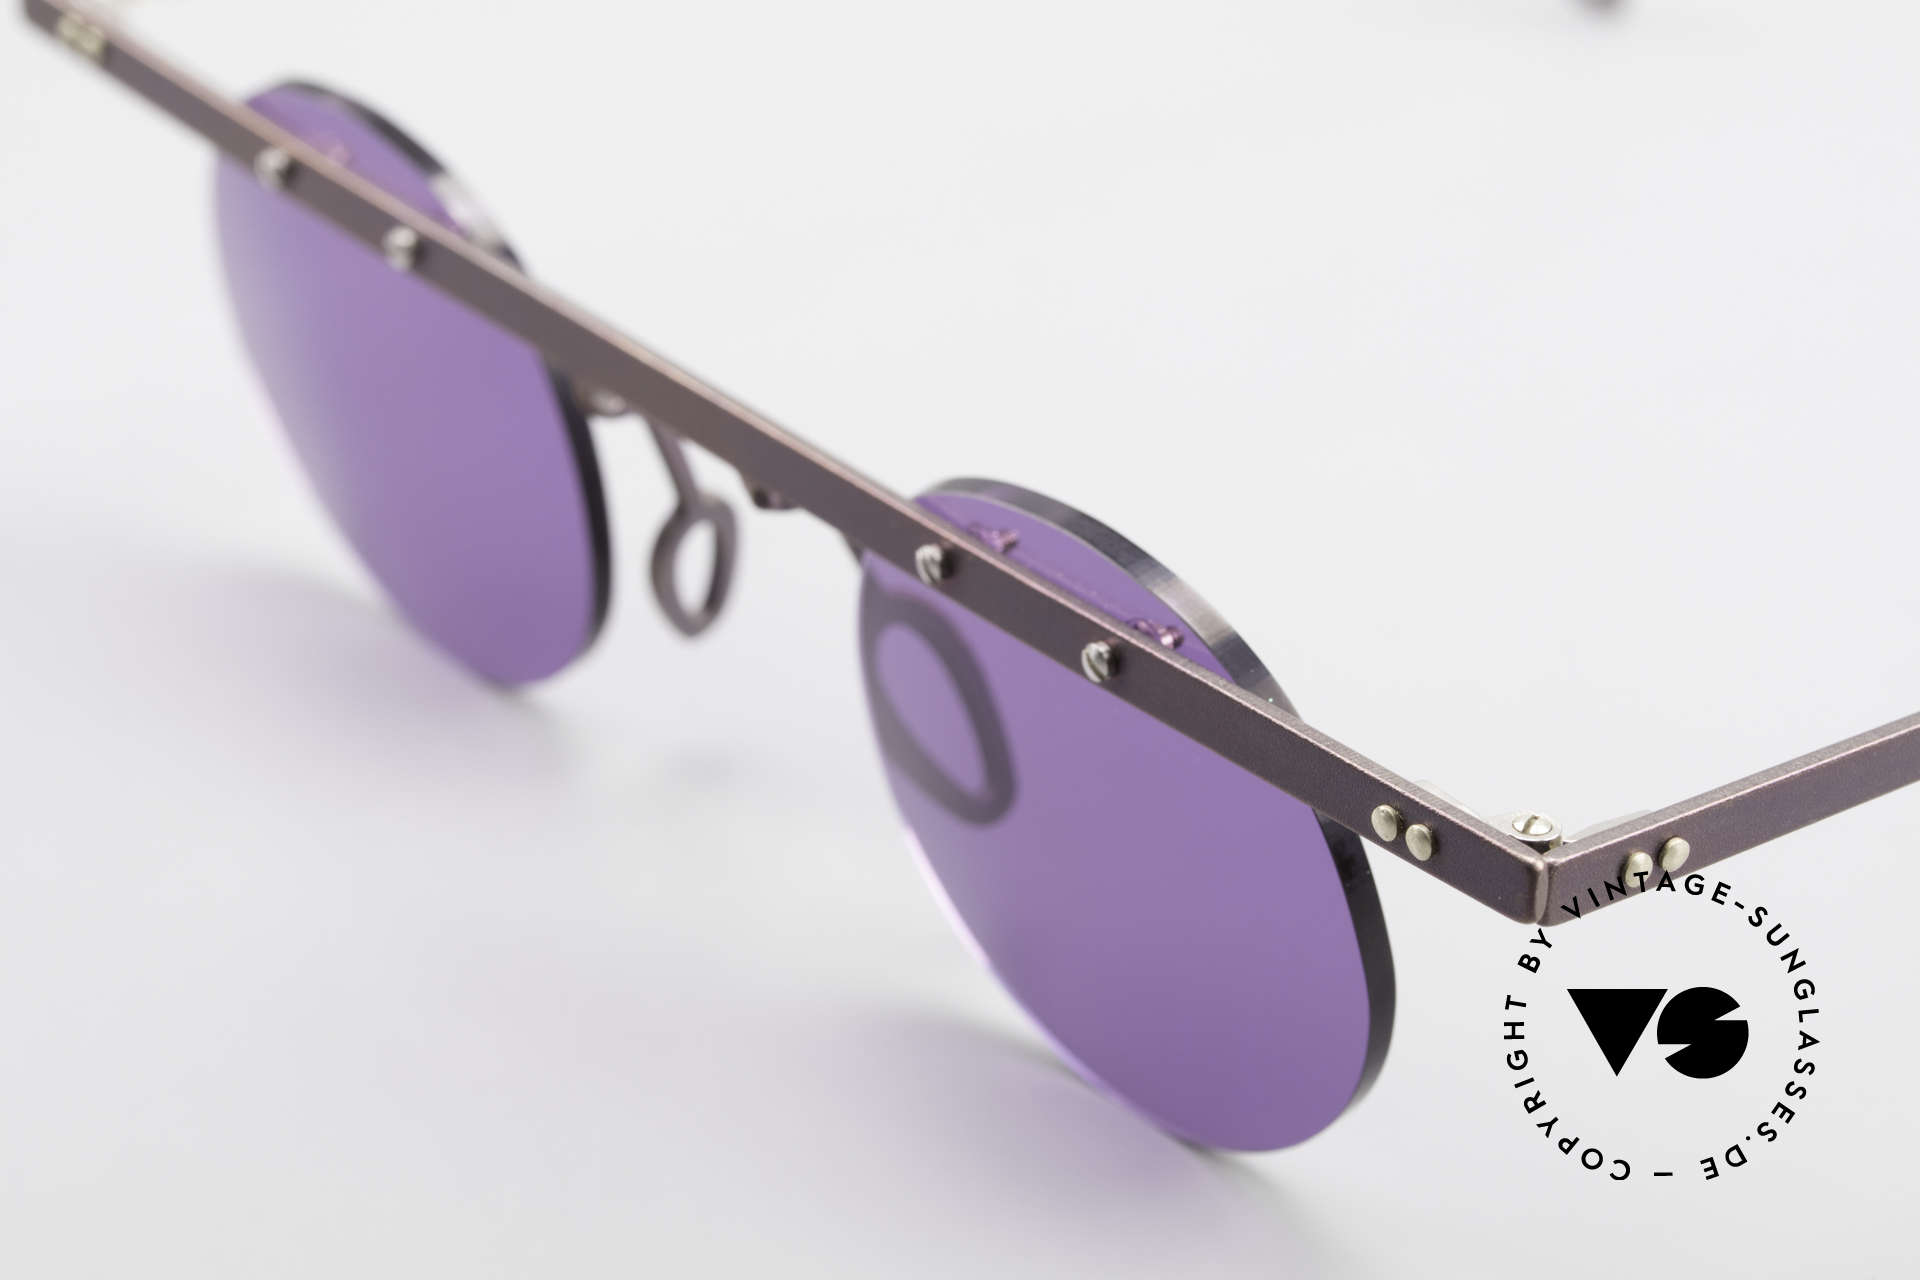 Theo Belgium Tita VII 5 Vintage Titanium Sunglasses, the round sun lenses are fixed with screws at the frame, Made for Men and Women